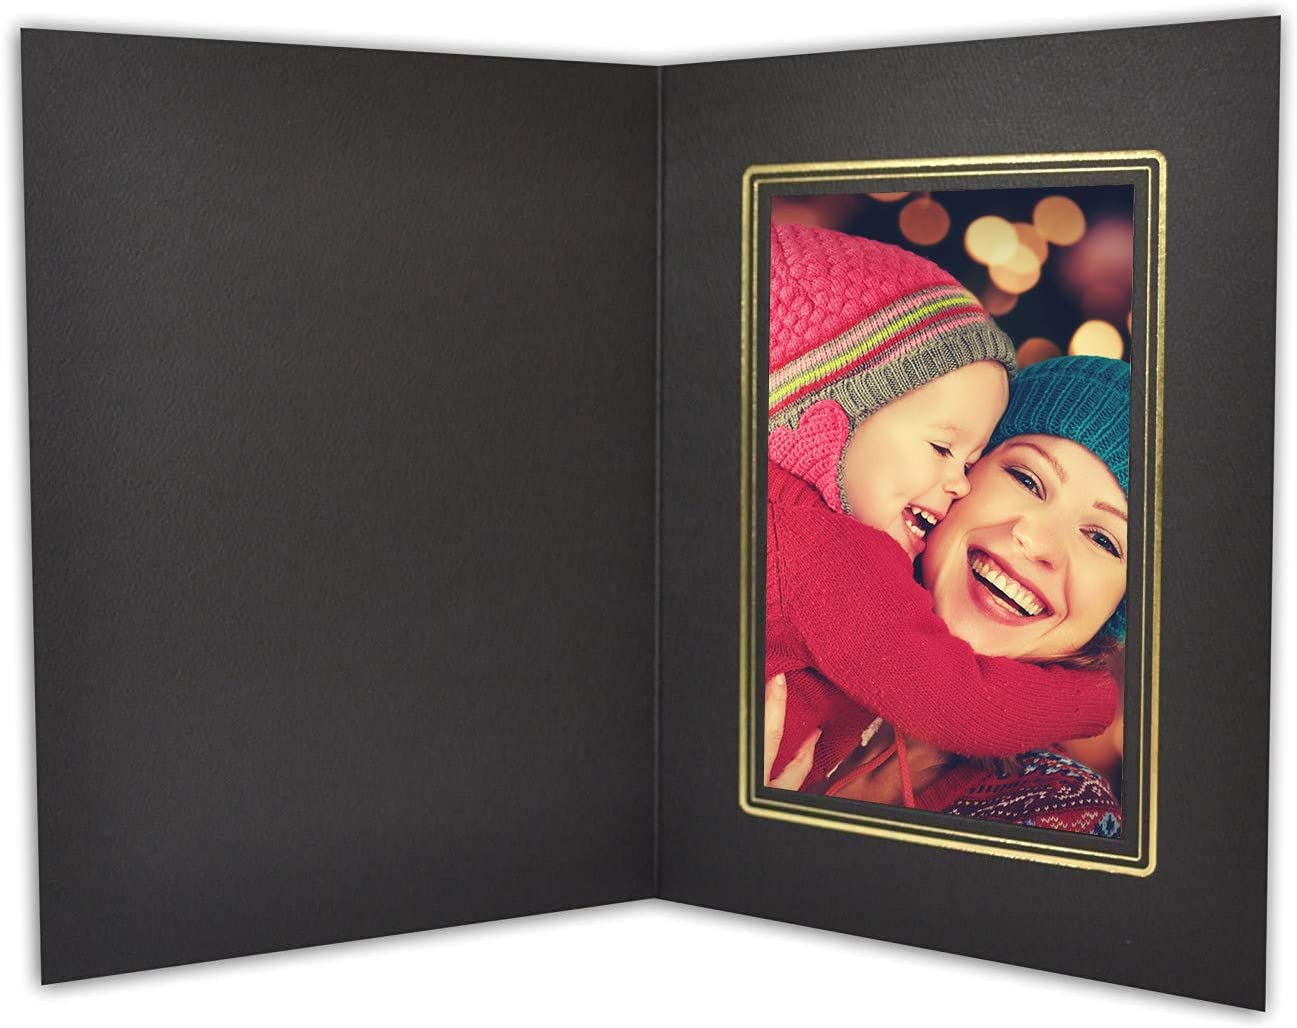 Golden State Art, Pack of 100 Photo Folders for 4x6 Pictures - Acid-Free Cardboard/Paper Frames - Great for Portraits, Special Events, Graduations, Weddings,Black with Gold Lining